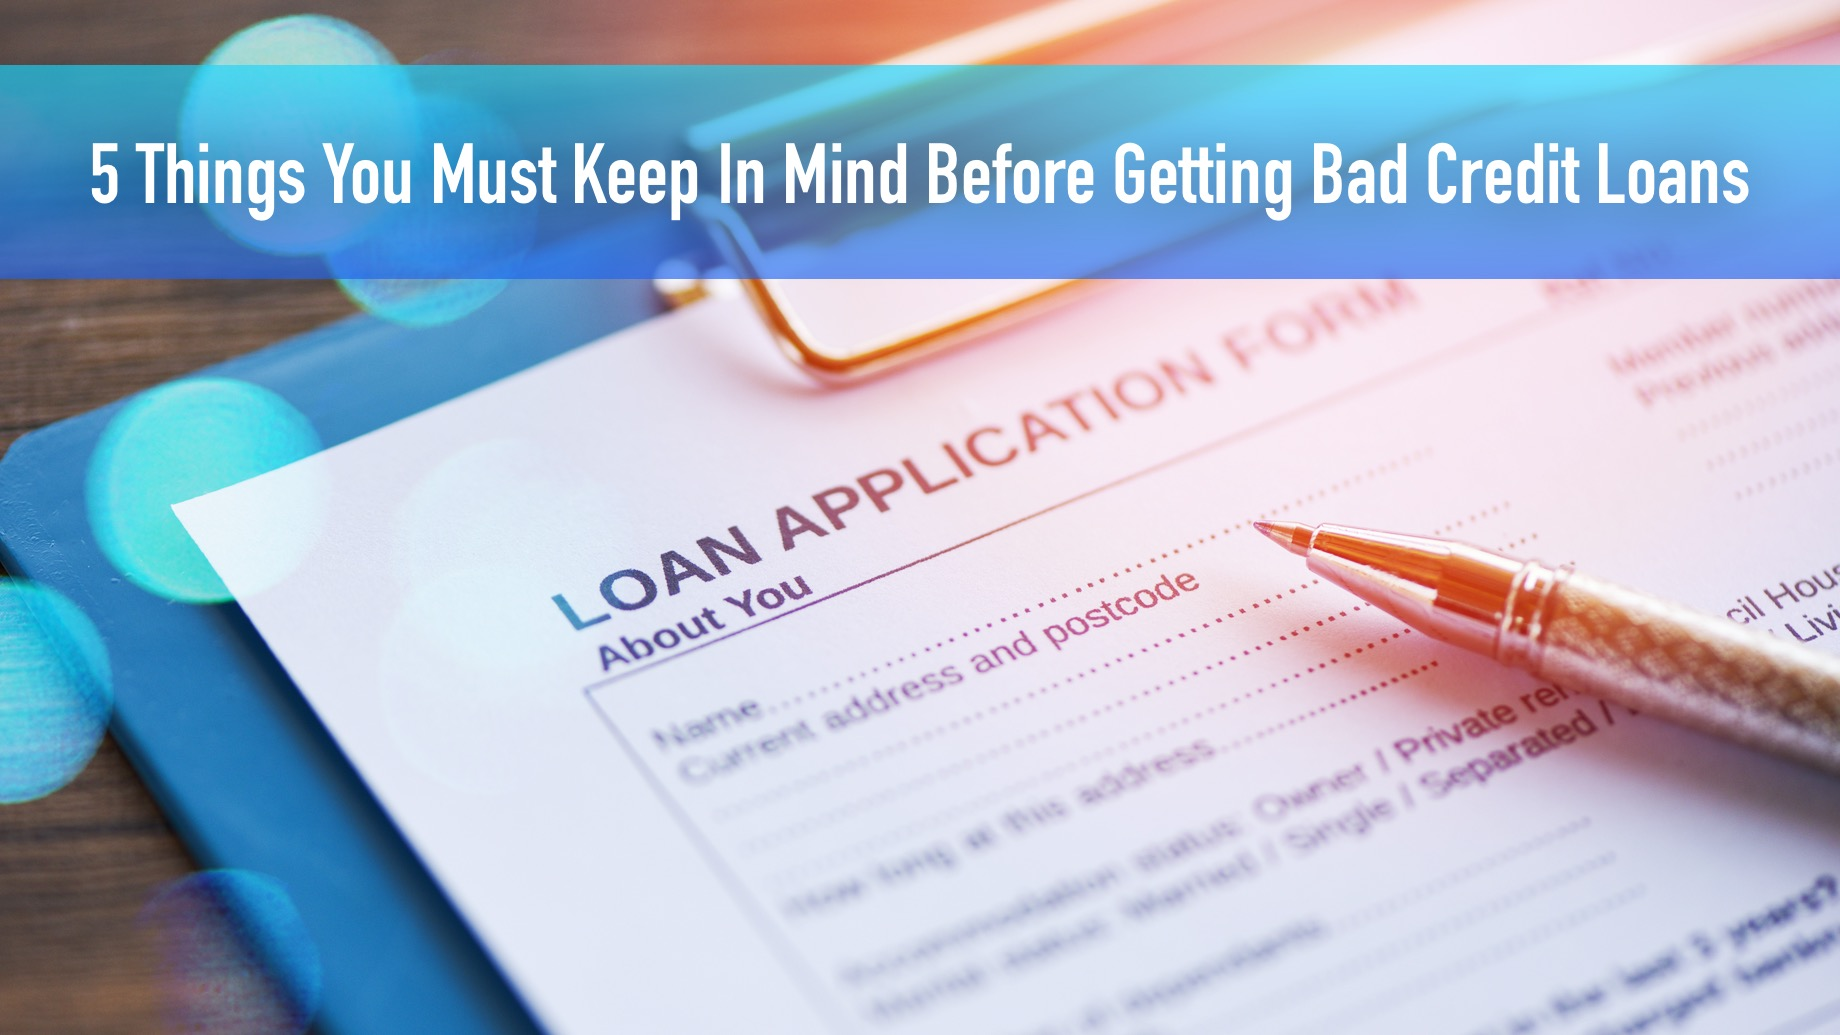 5 Things You Must Keep In Mind Before Getting Bad Credit Loans